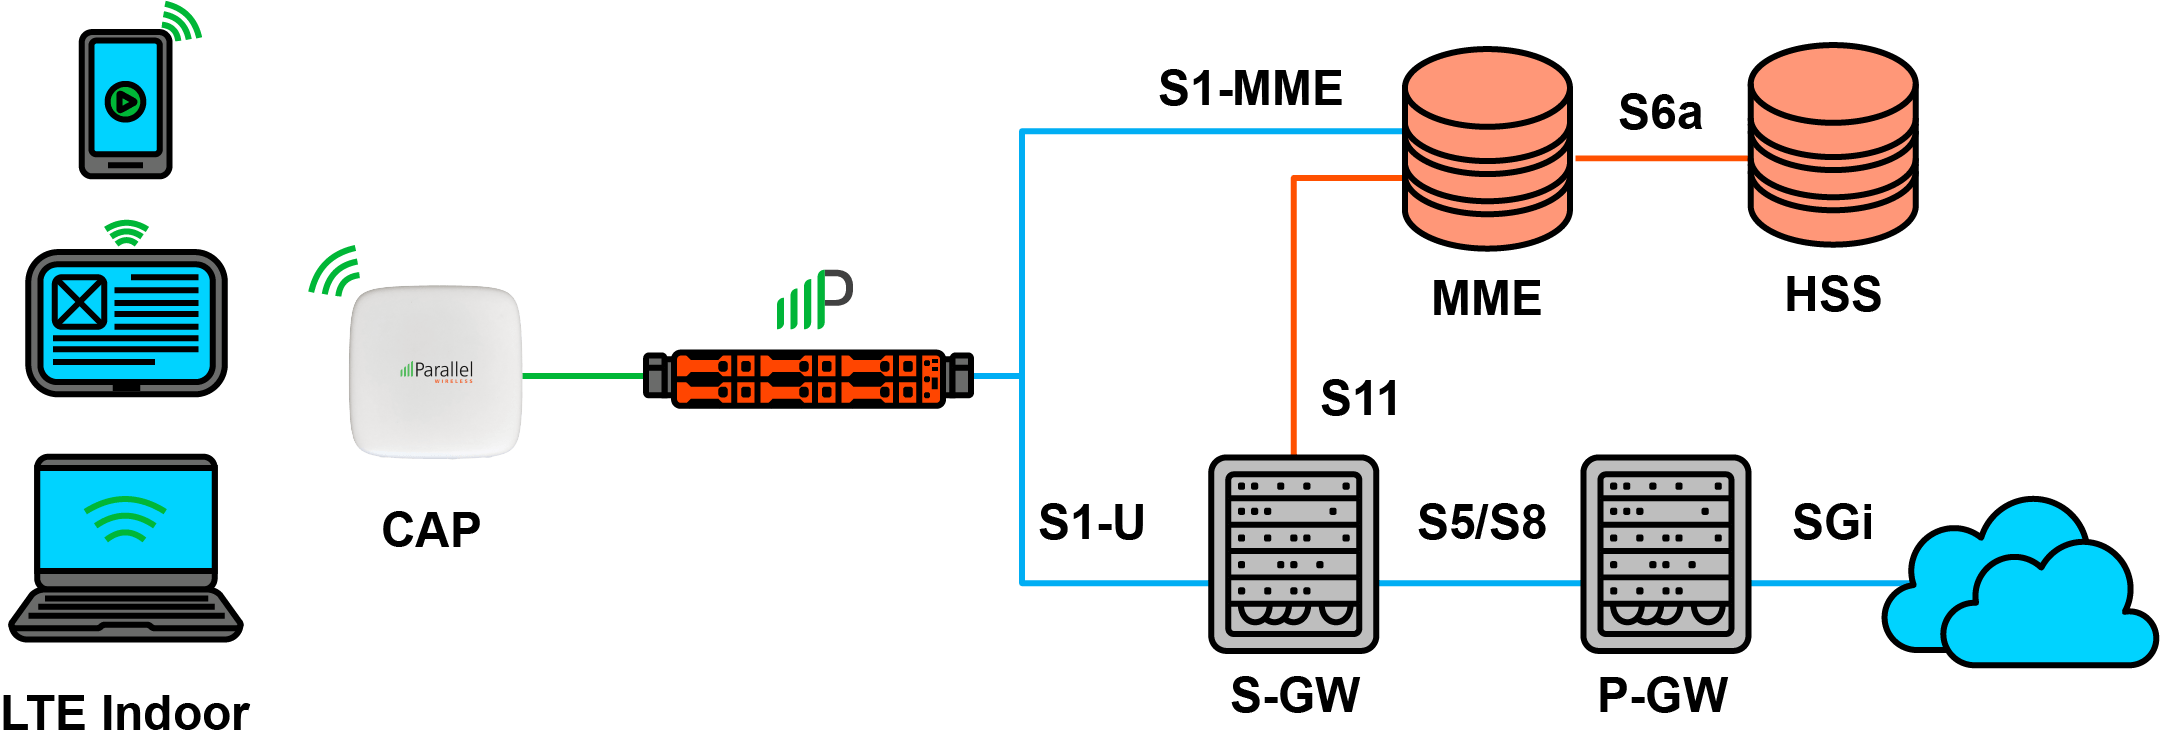 technical features illustration